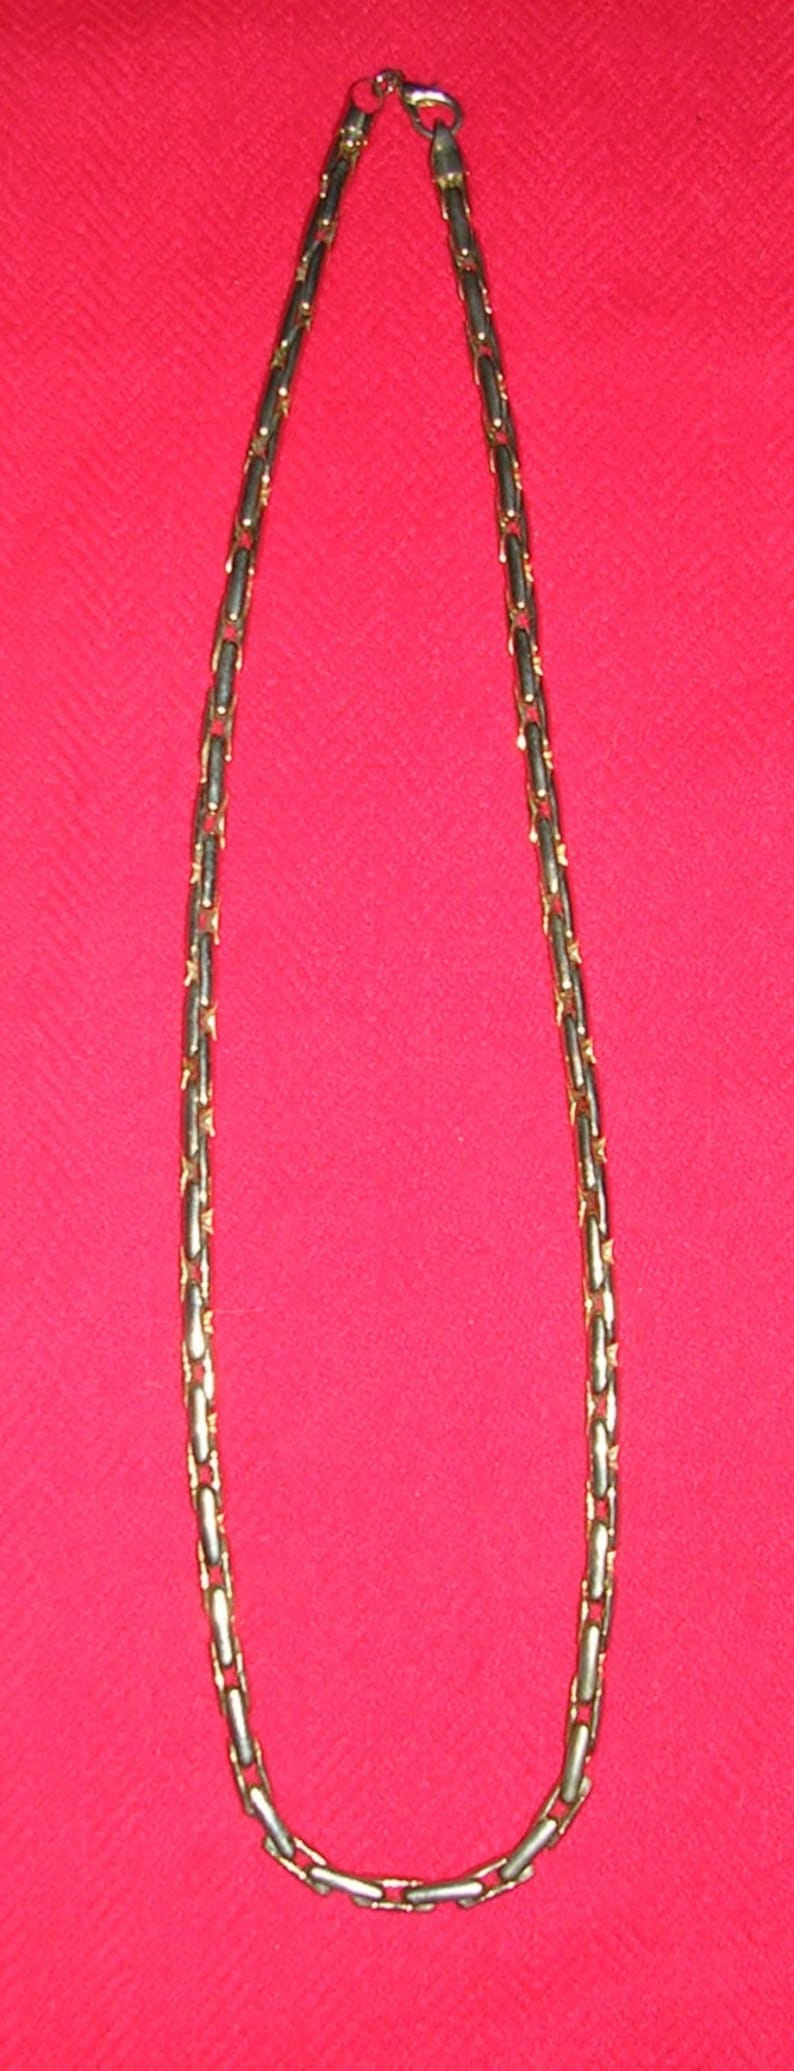 Vintage 1980s unisex gold-plated weighty costume jewellery long rambo mens necklace presenting in mint condition /& sporting crane hook clasp